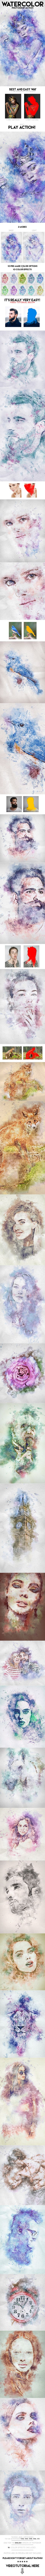 Watercolor Action turns your photo into realistic watercolor picture. Action perfect works with portraits or other photos. Action contains 10 pre-made color options and 10 color FX. Save hours of work with this action. After action finish the work you get…